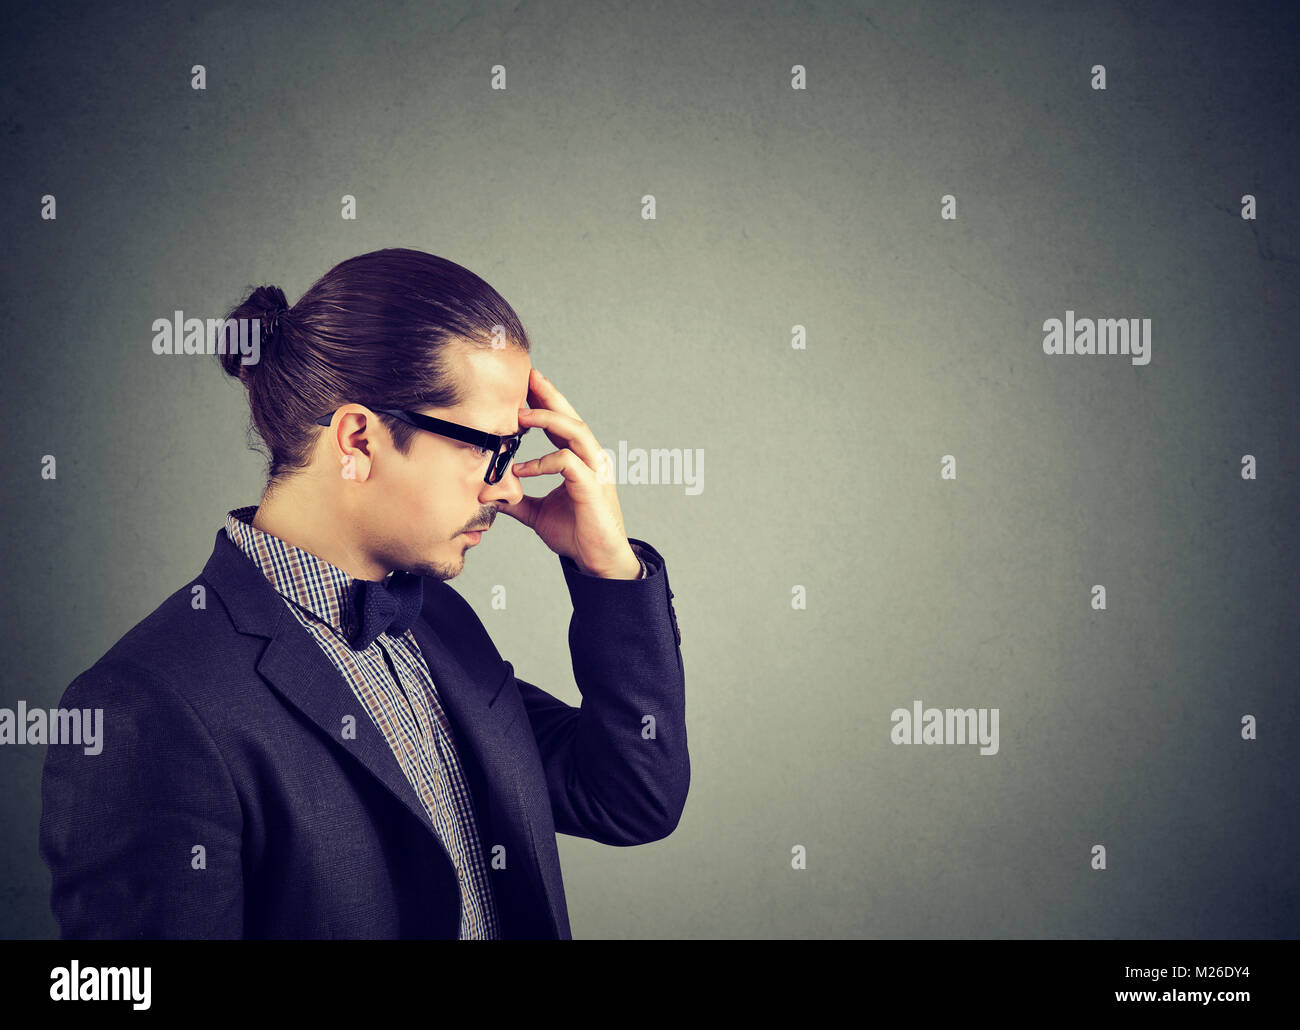 Concentrated man in suit rubbing forehead while brainstorming†pensively and looking away on gray backdrop. - Stock Image